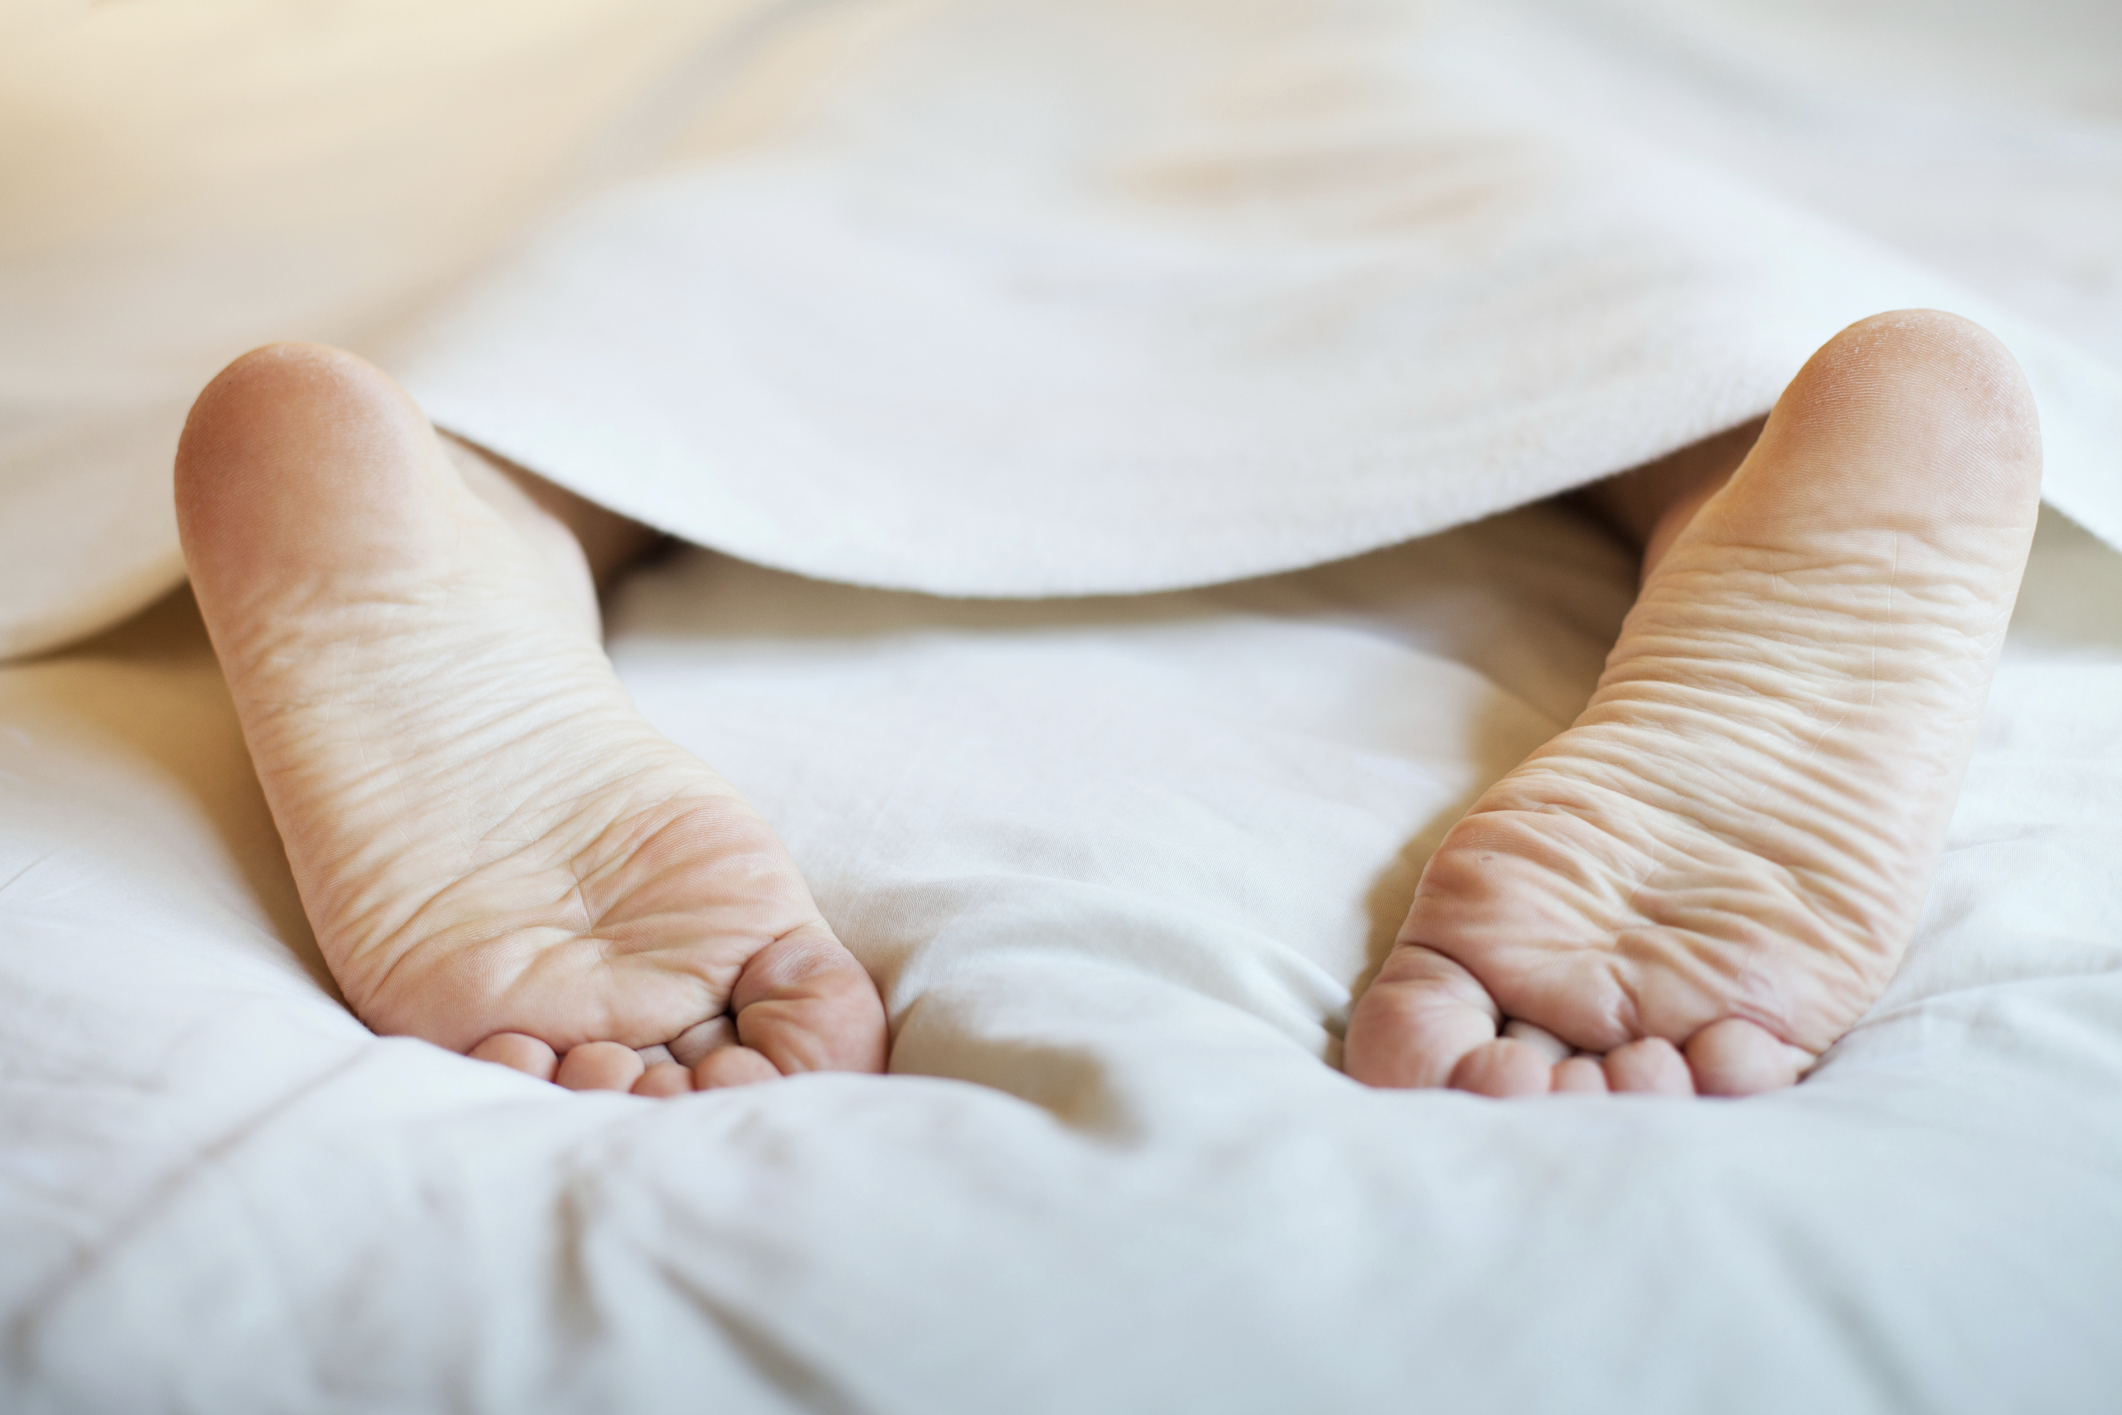 Foot Pain When First Walking in the Morning | LIVESTRONG.COM